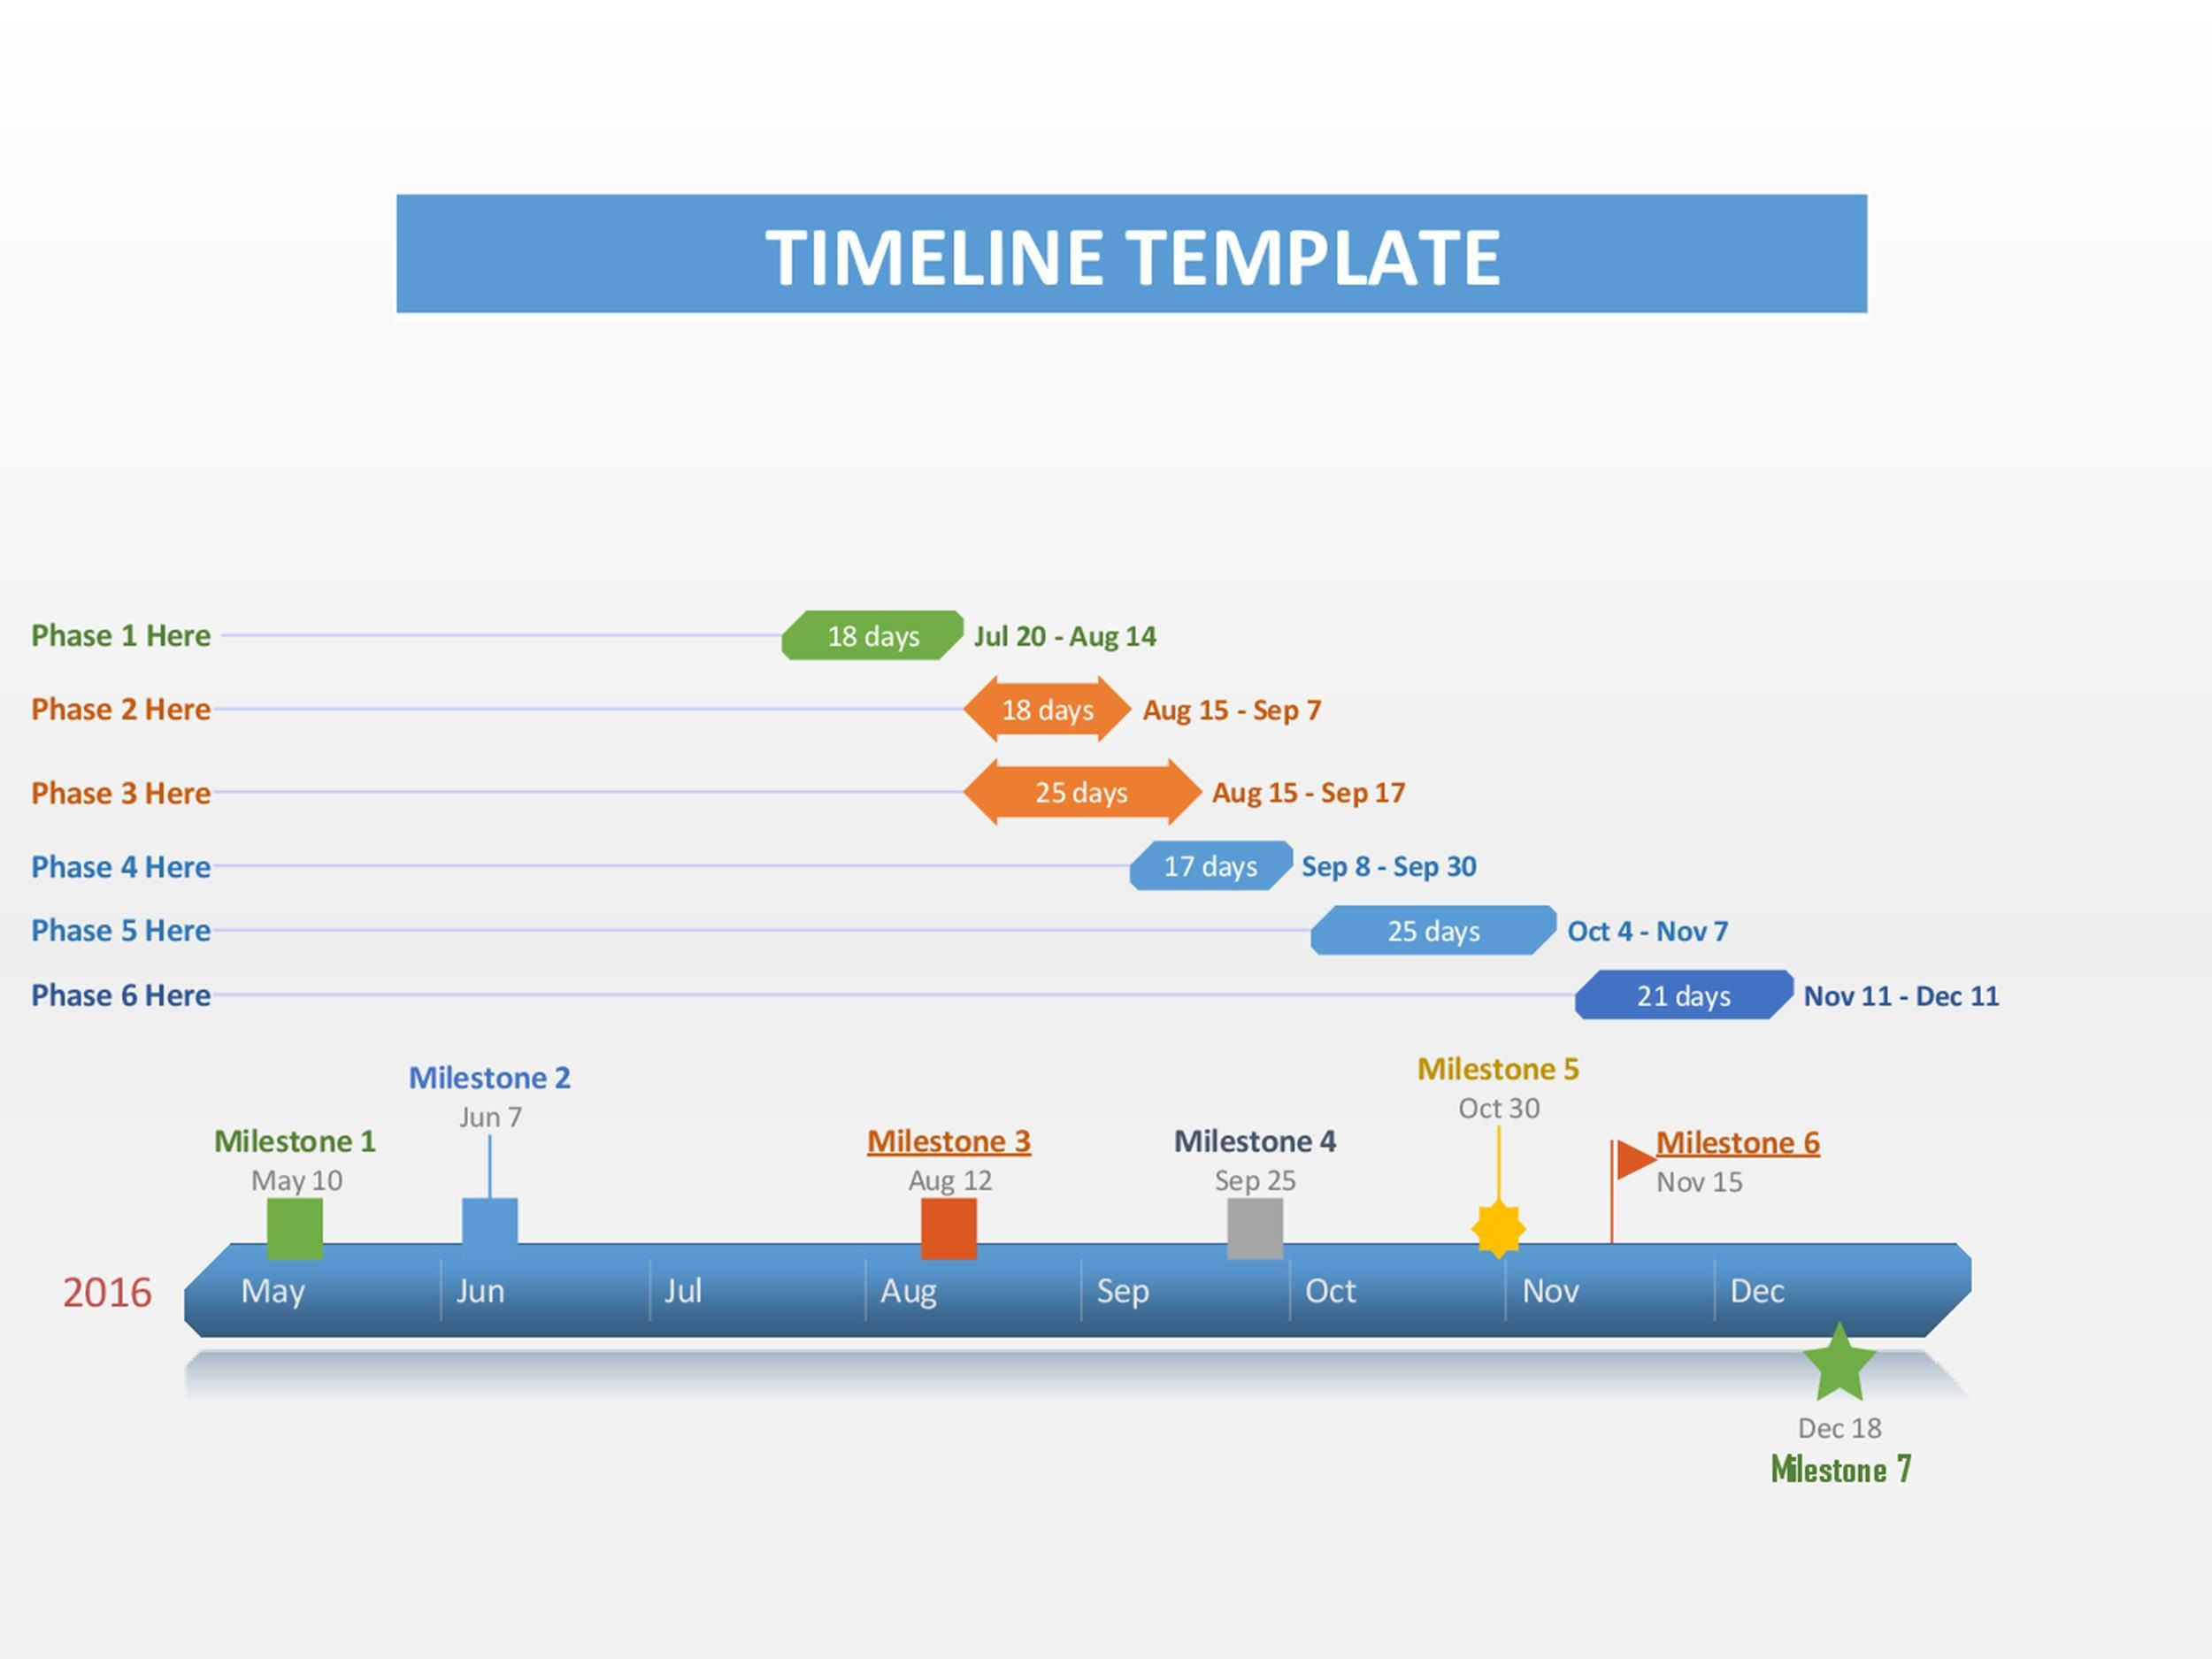 005 Magnificent Timeline Template For Word 2016 High Definition Full